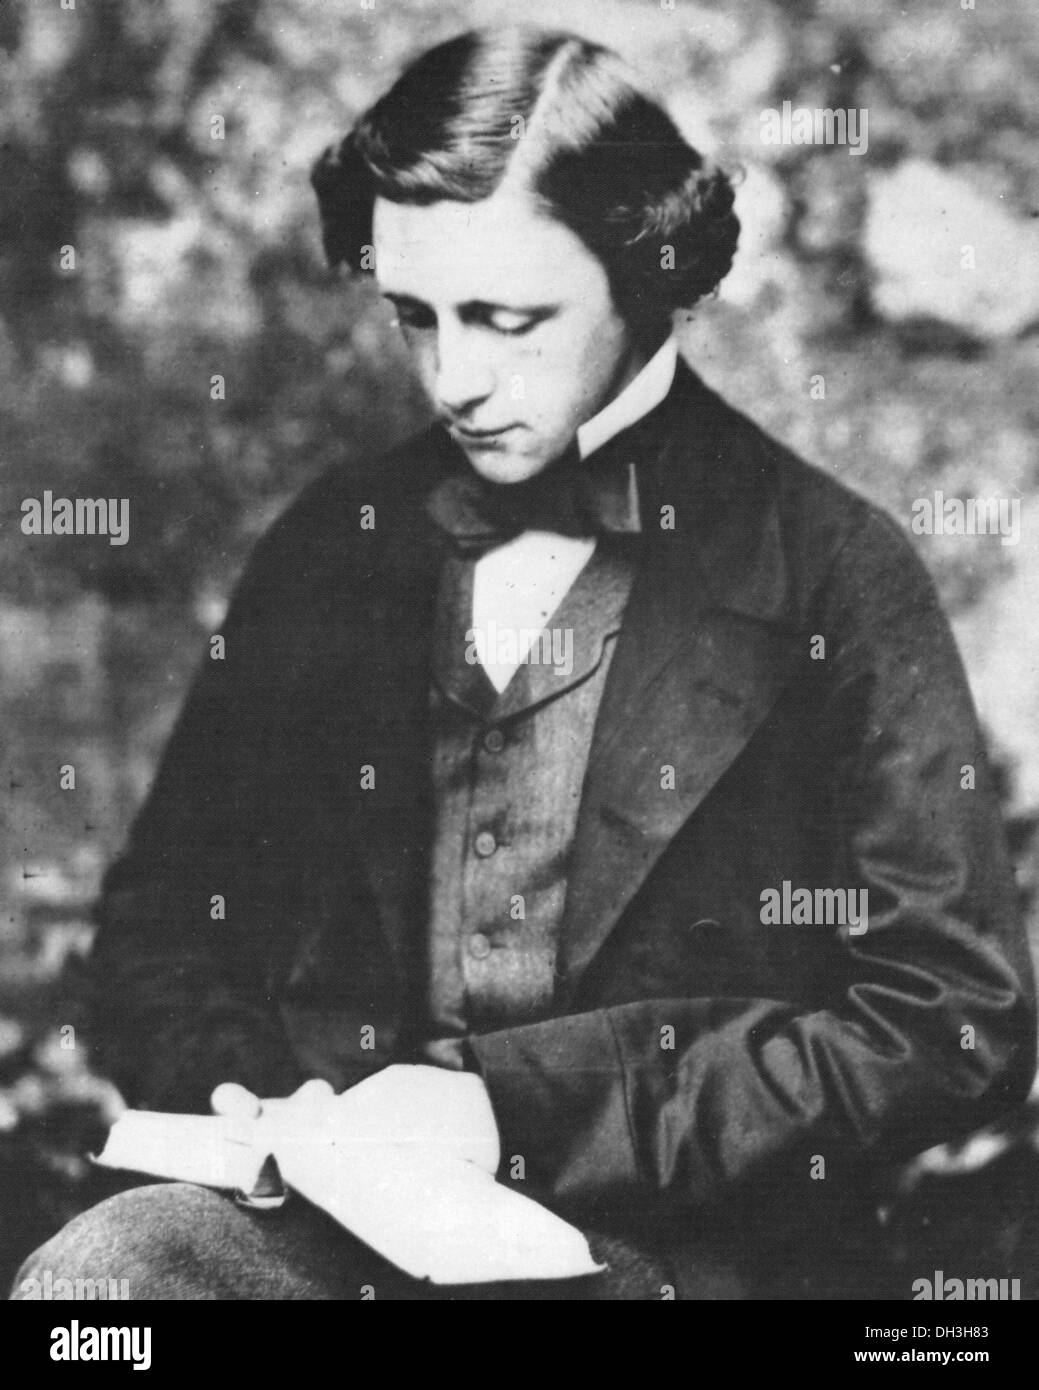 LEWIS CARROLL - Charles Dodgson (1832-1898) English writer about 1855 - Stock Image